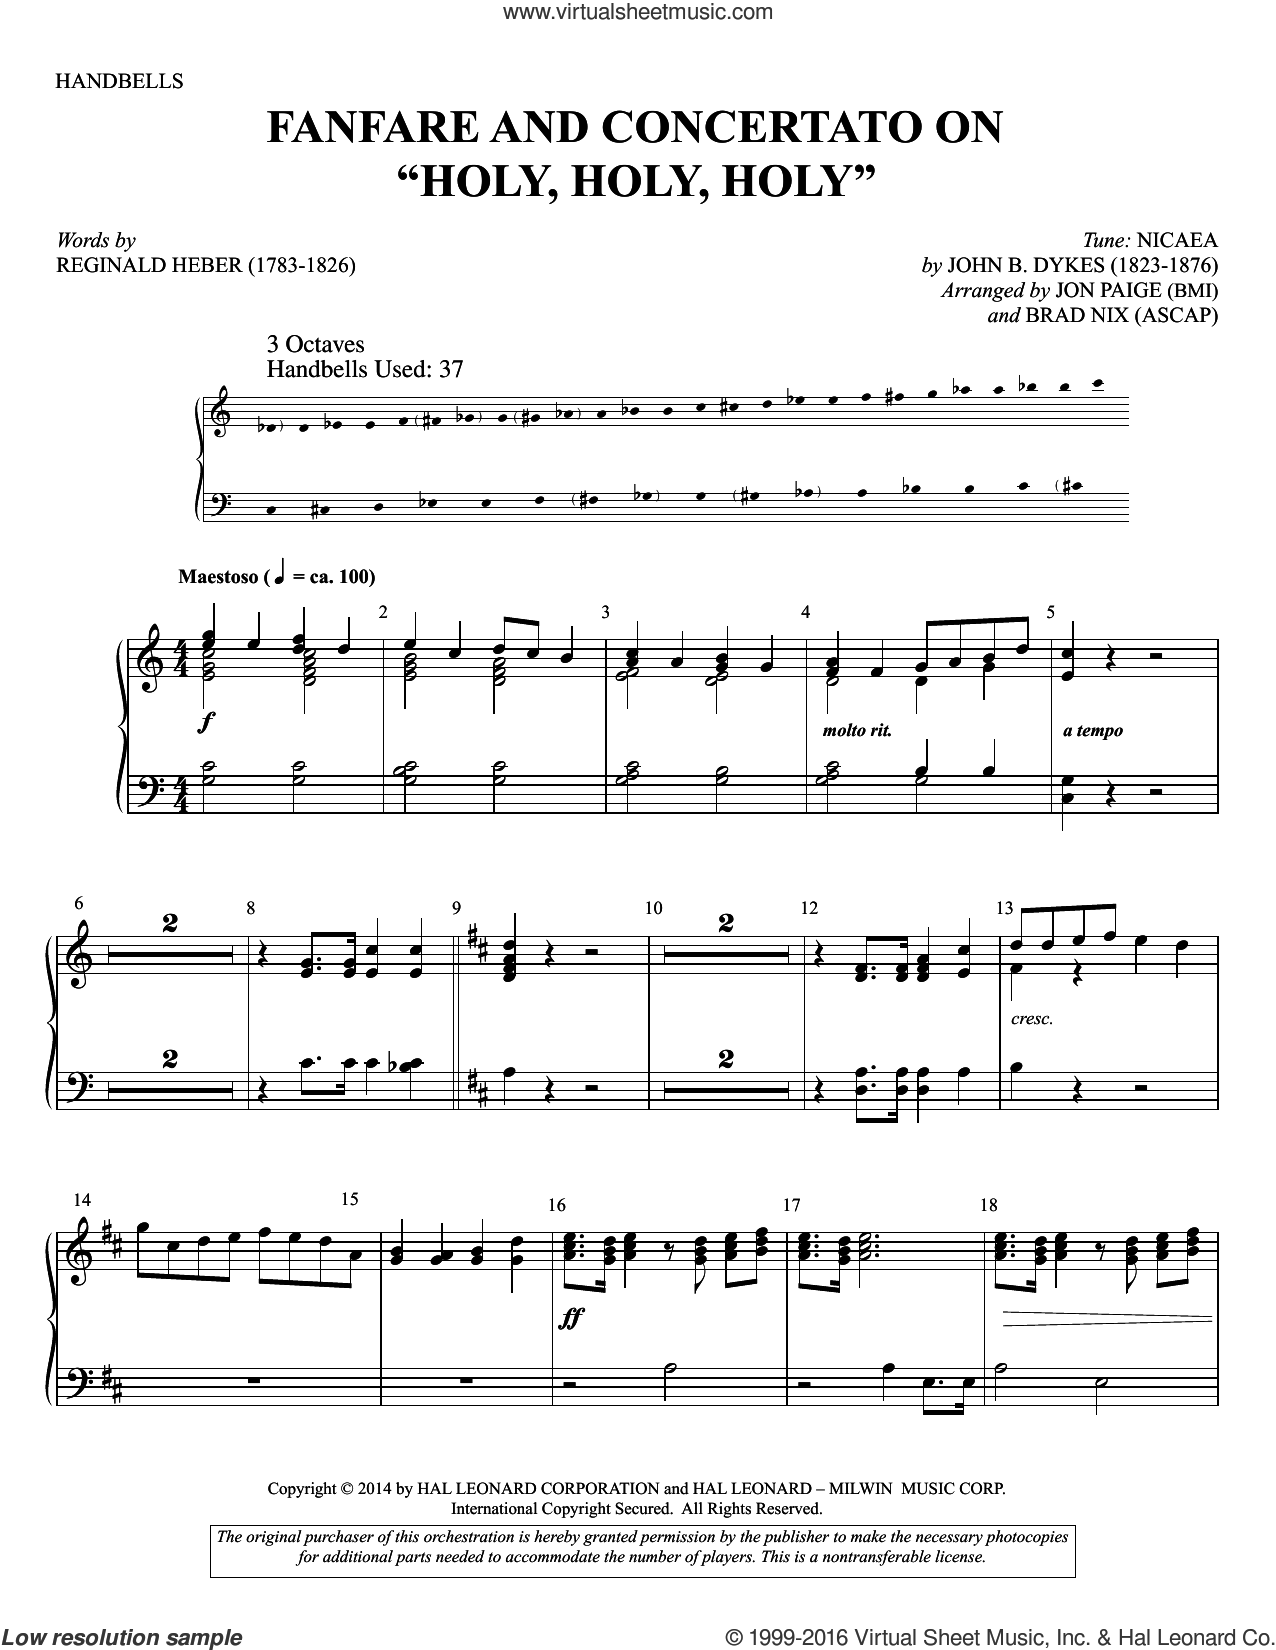 Holy, Holy, Holy sheet music for percussions by Reginald Heber